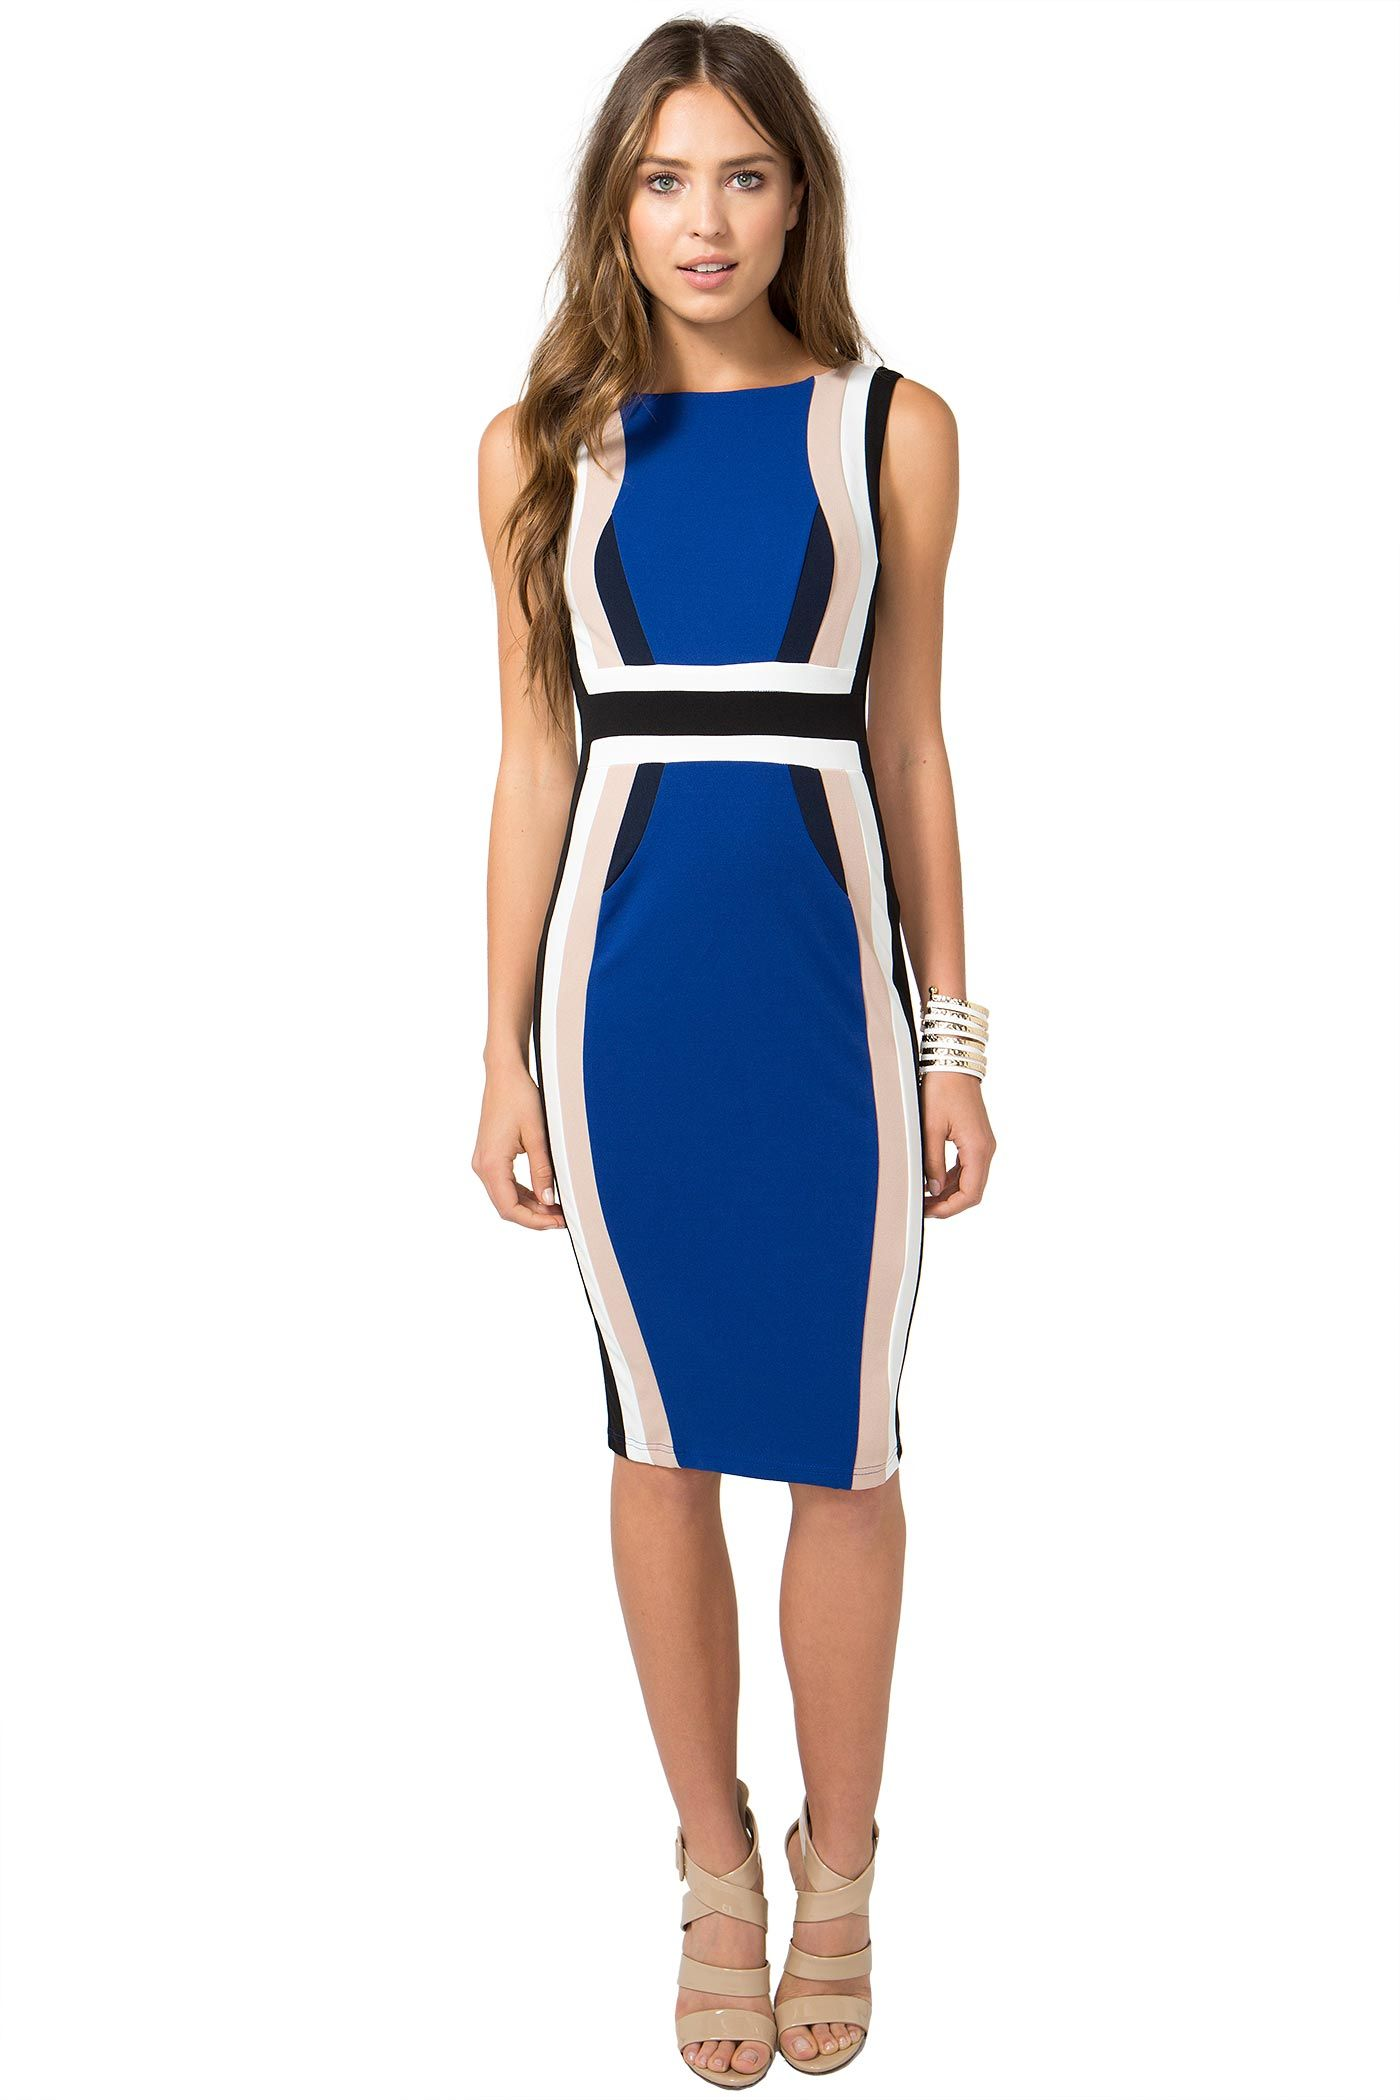 a retro-perfect sheath dress, featuring a colorblocked body, defined